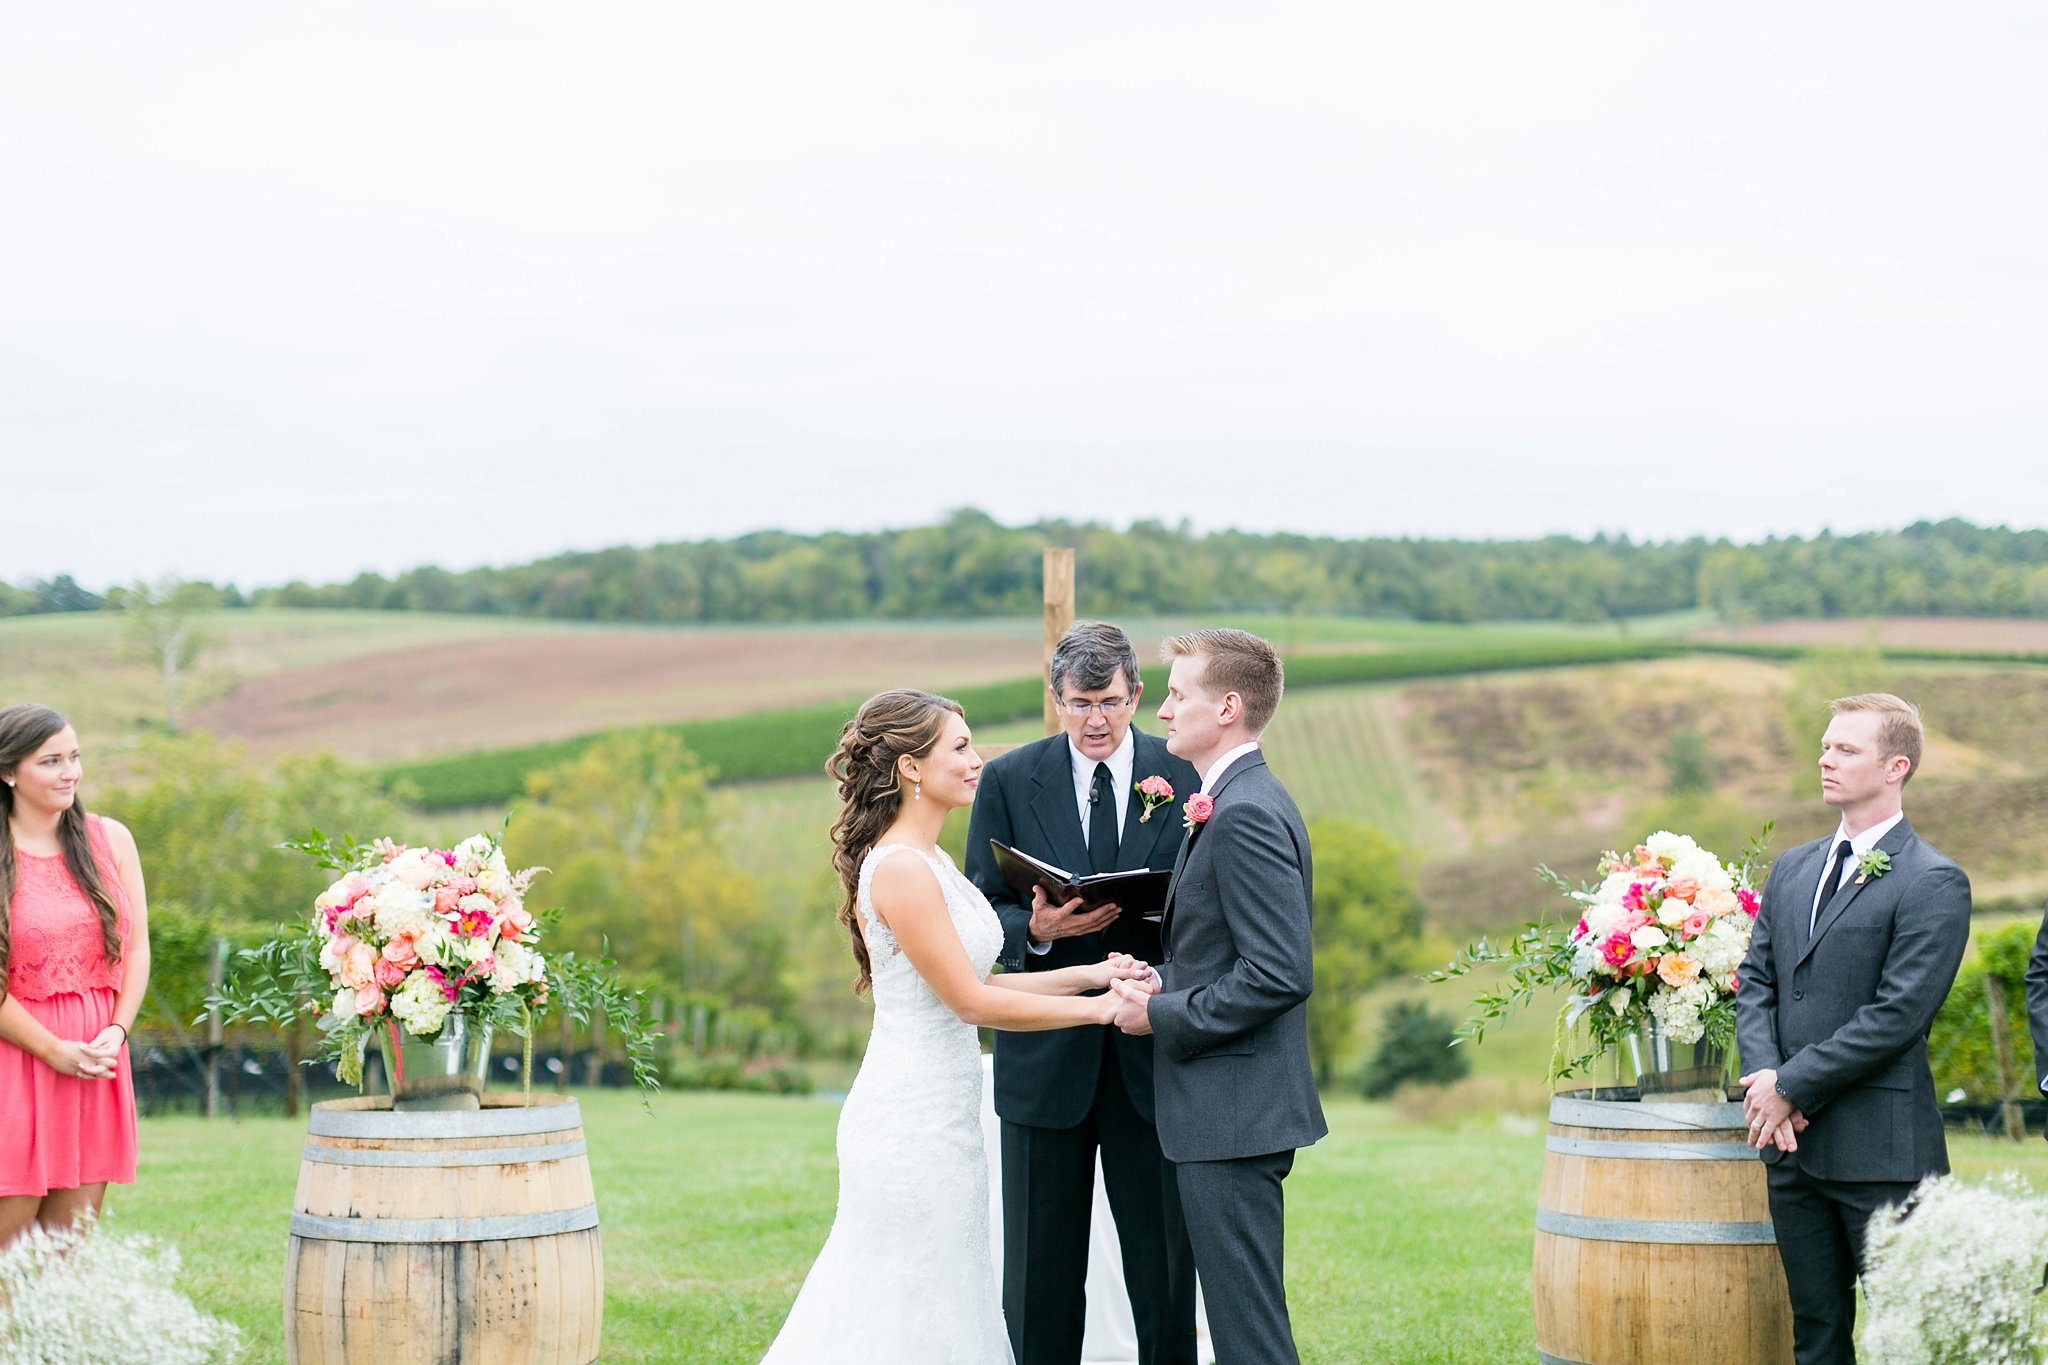 Stone Tower Winery Wedding Photos Virginia Wedding Photographer Megan Kelsey Photography Sam & Angela-155.jpg